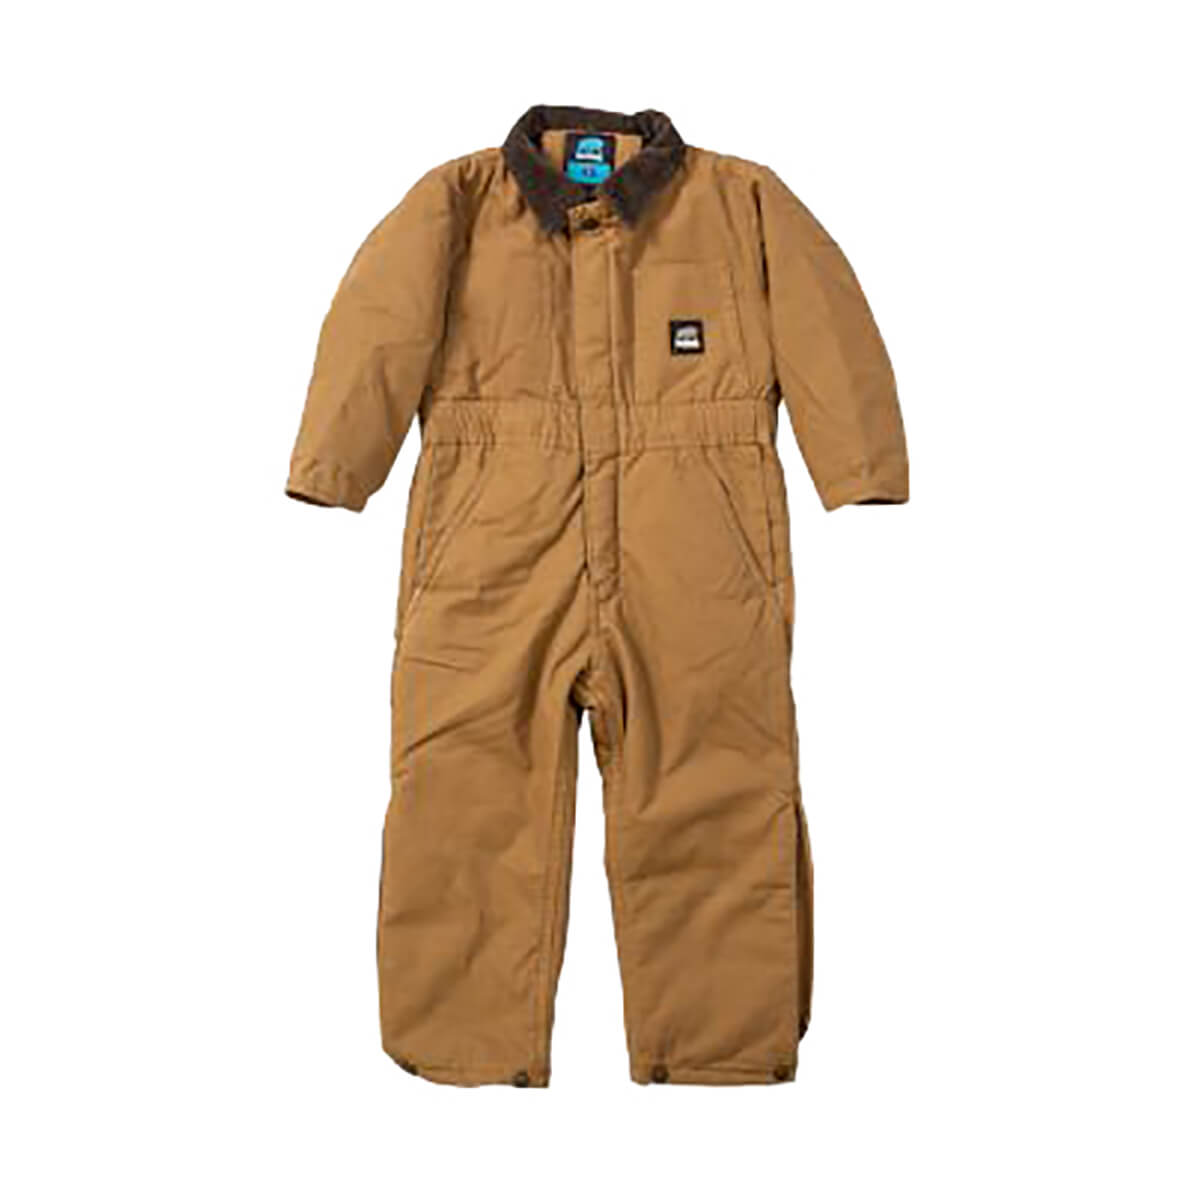 Youth Lined Coverall